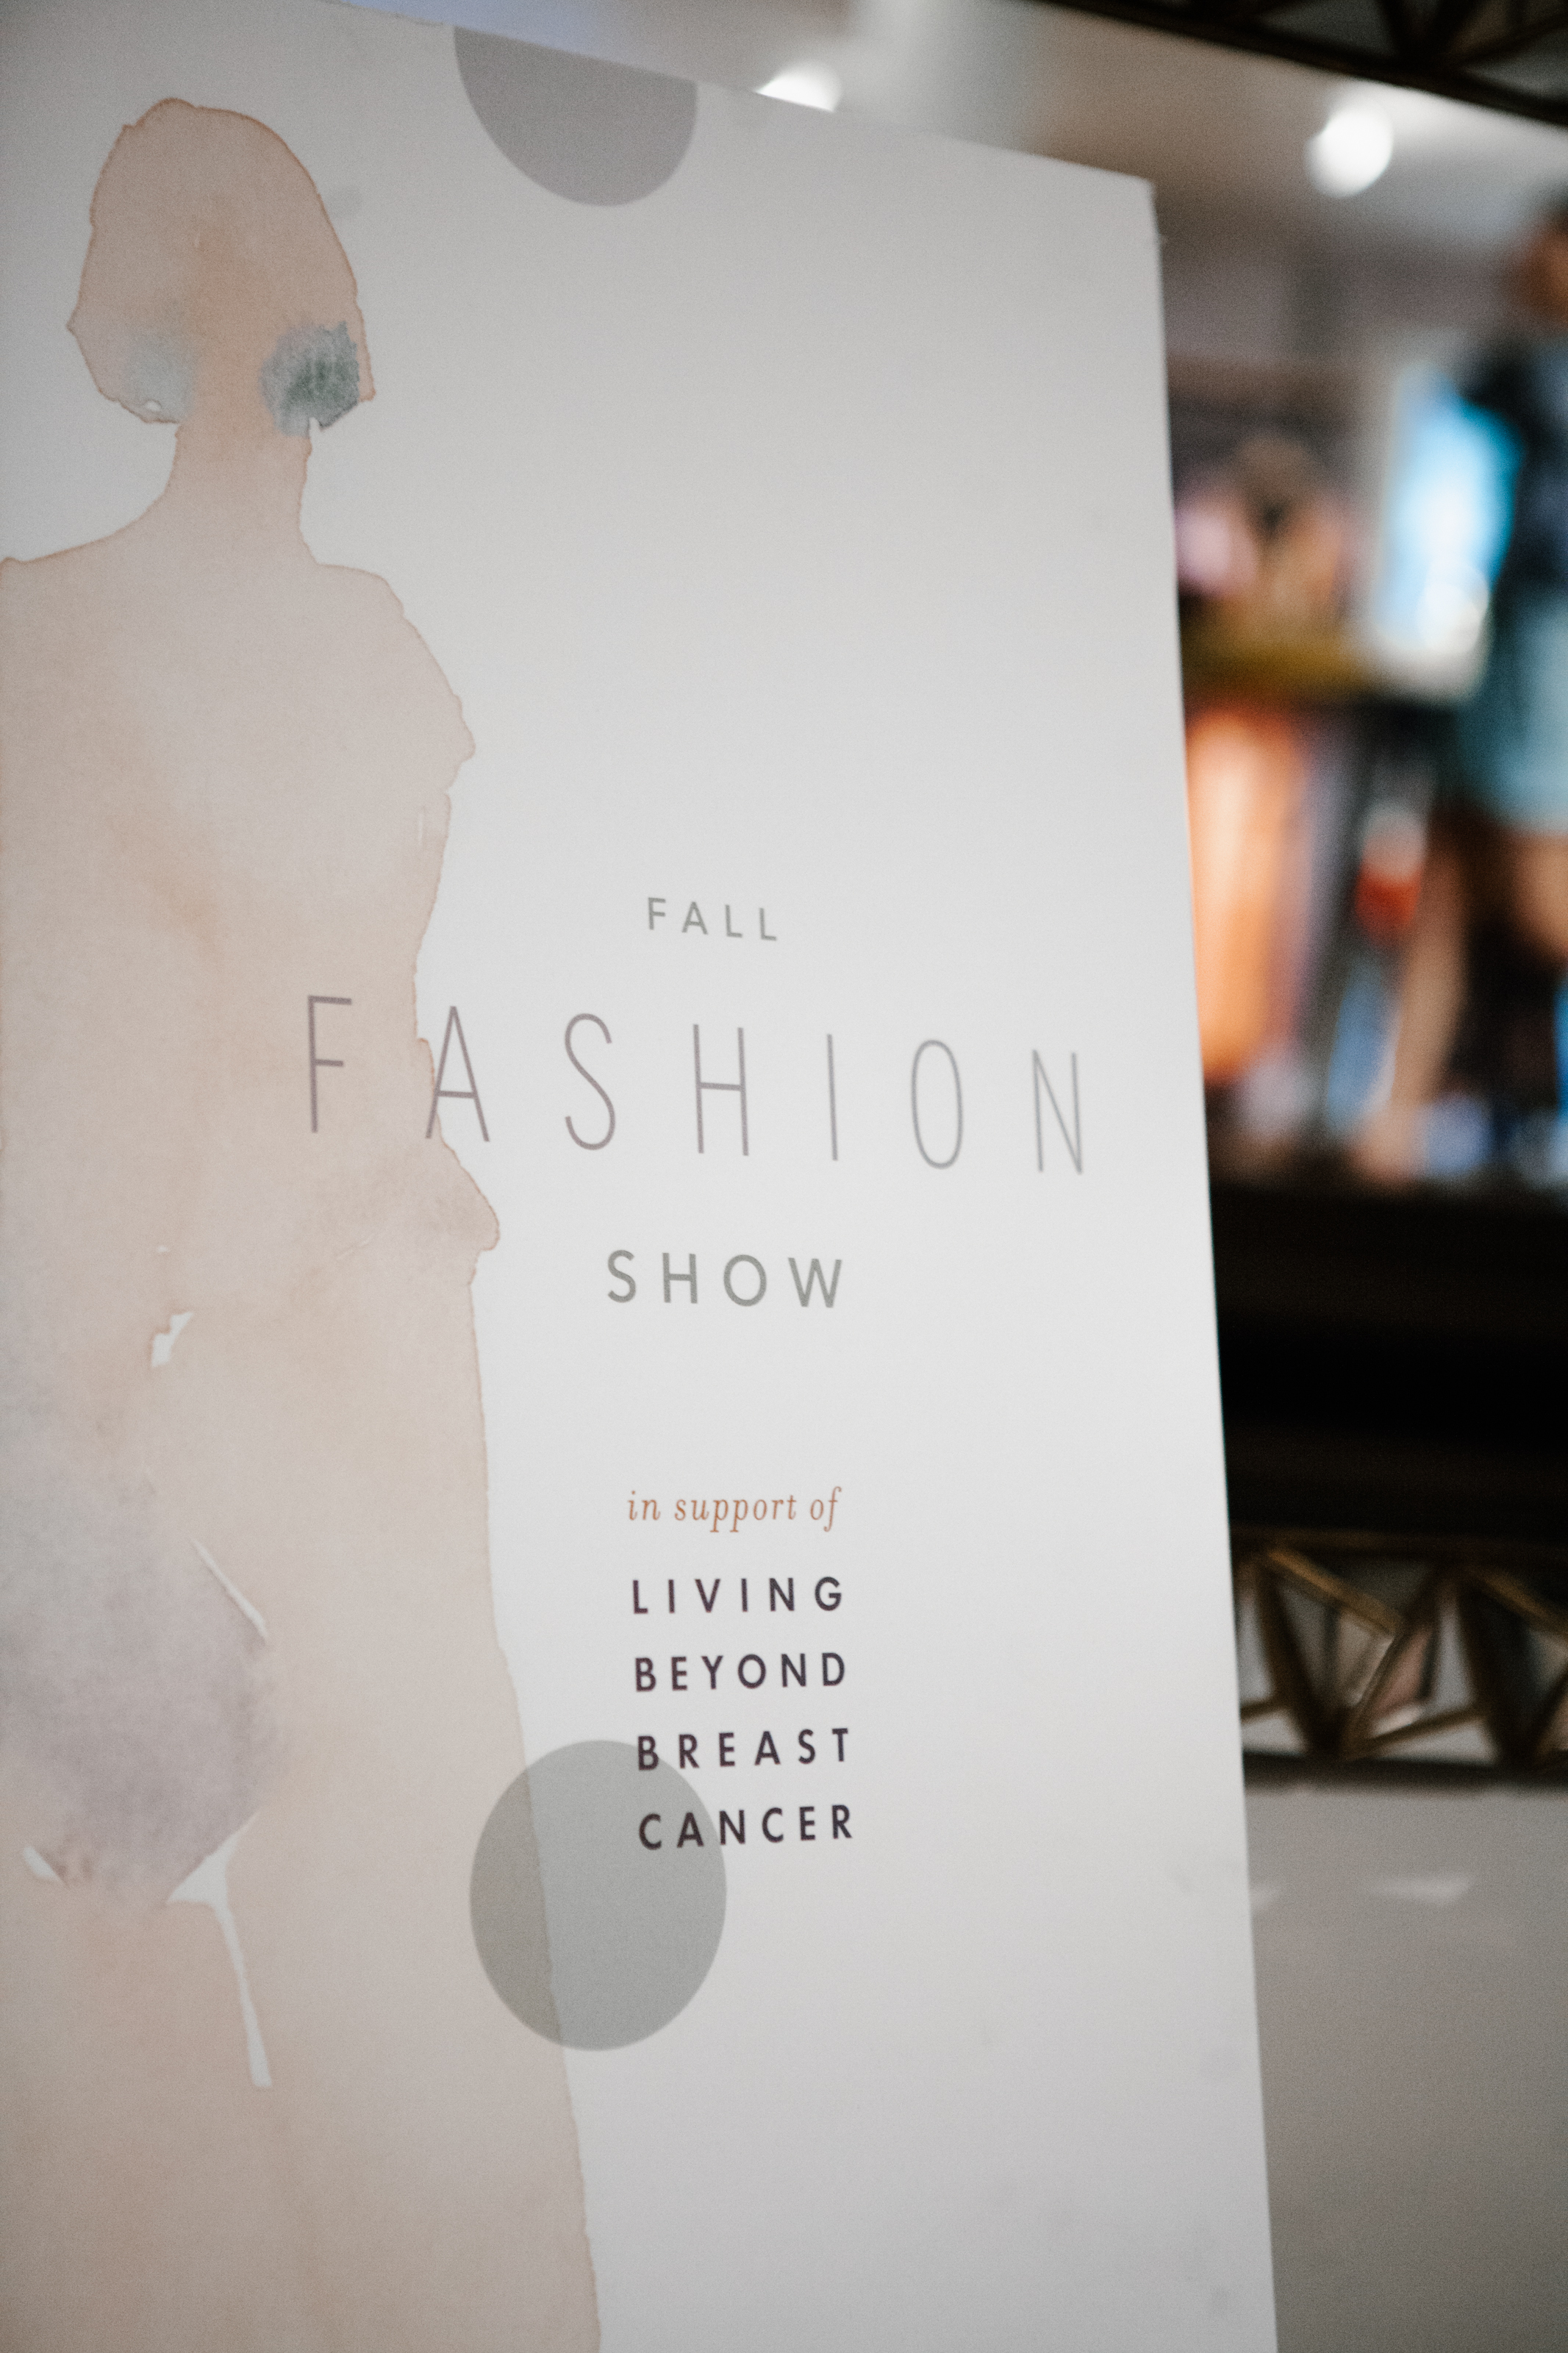 The show's proceeds benefited Living Beyond Breast Cancer.